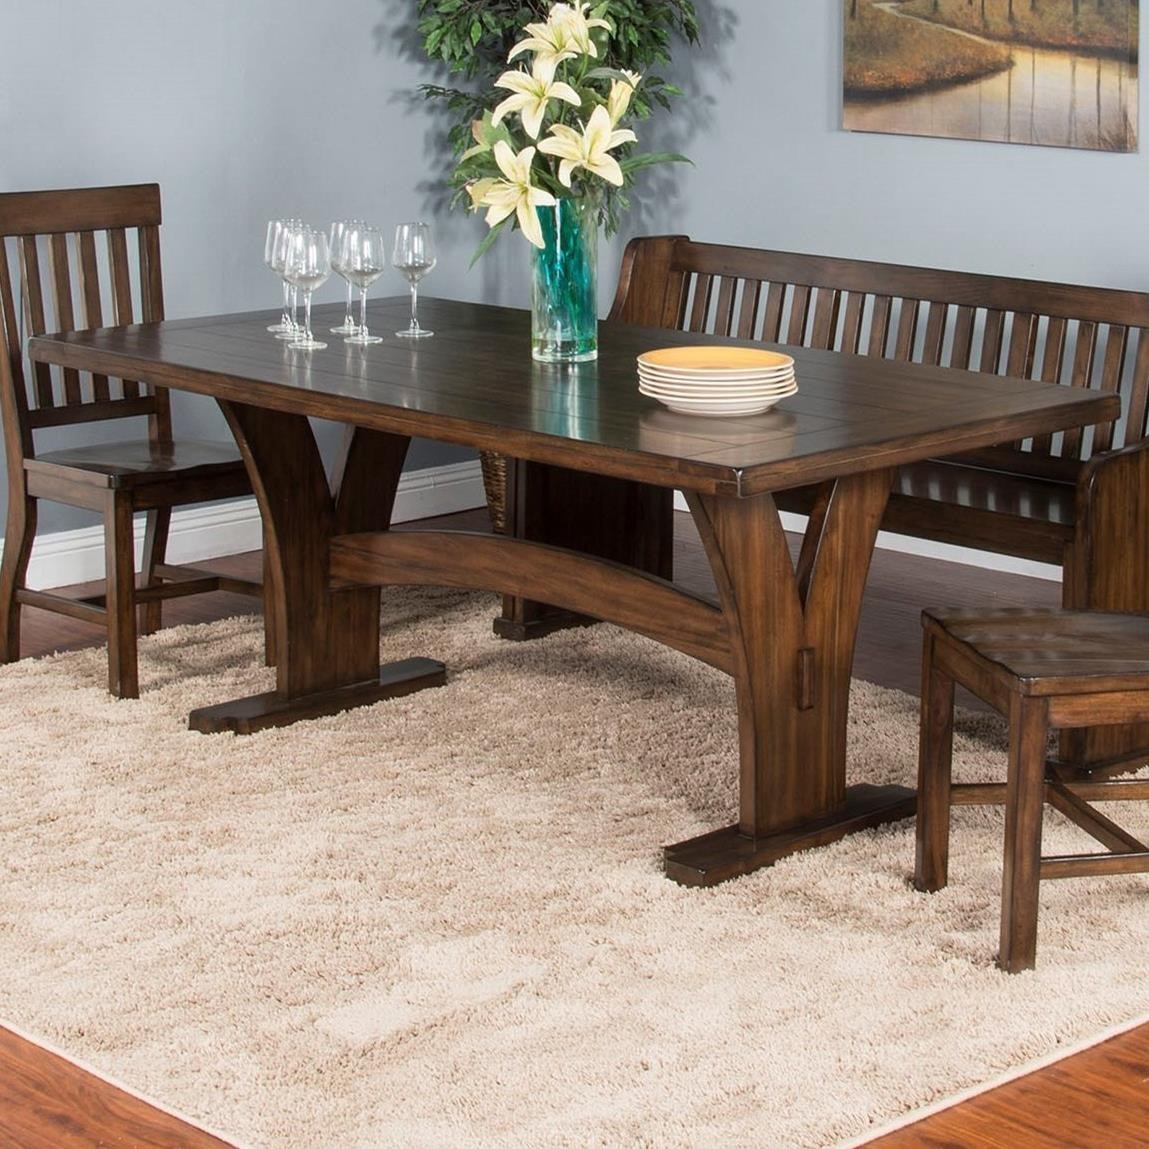 Dining Table Designs Lancaster Mission Trestle Table By Sunny Designs At Suburban Furniture